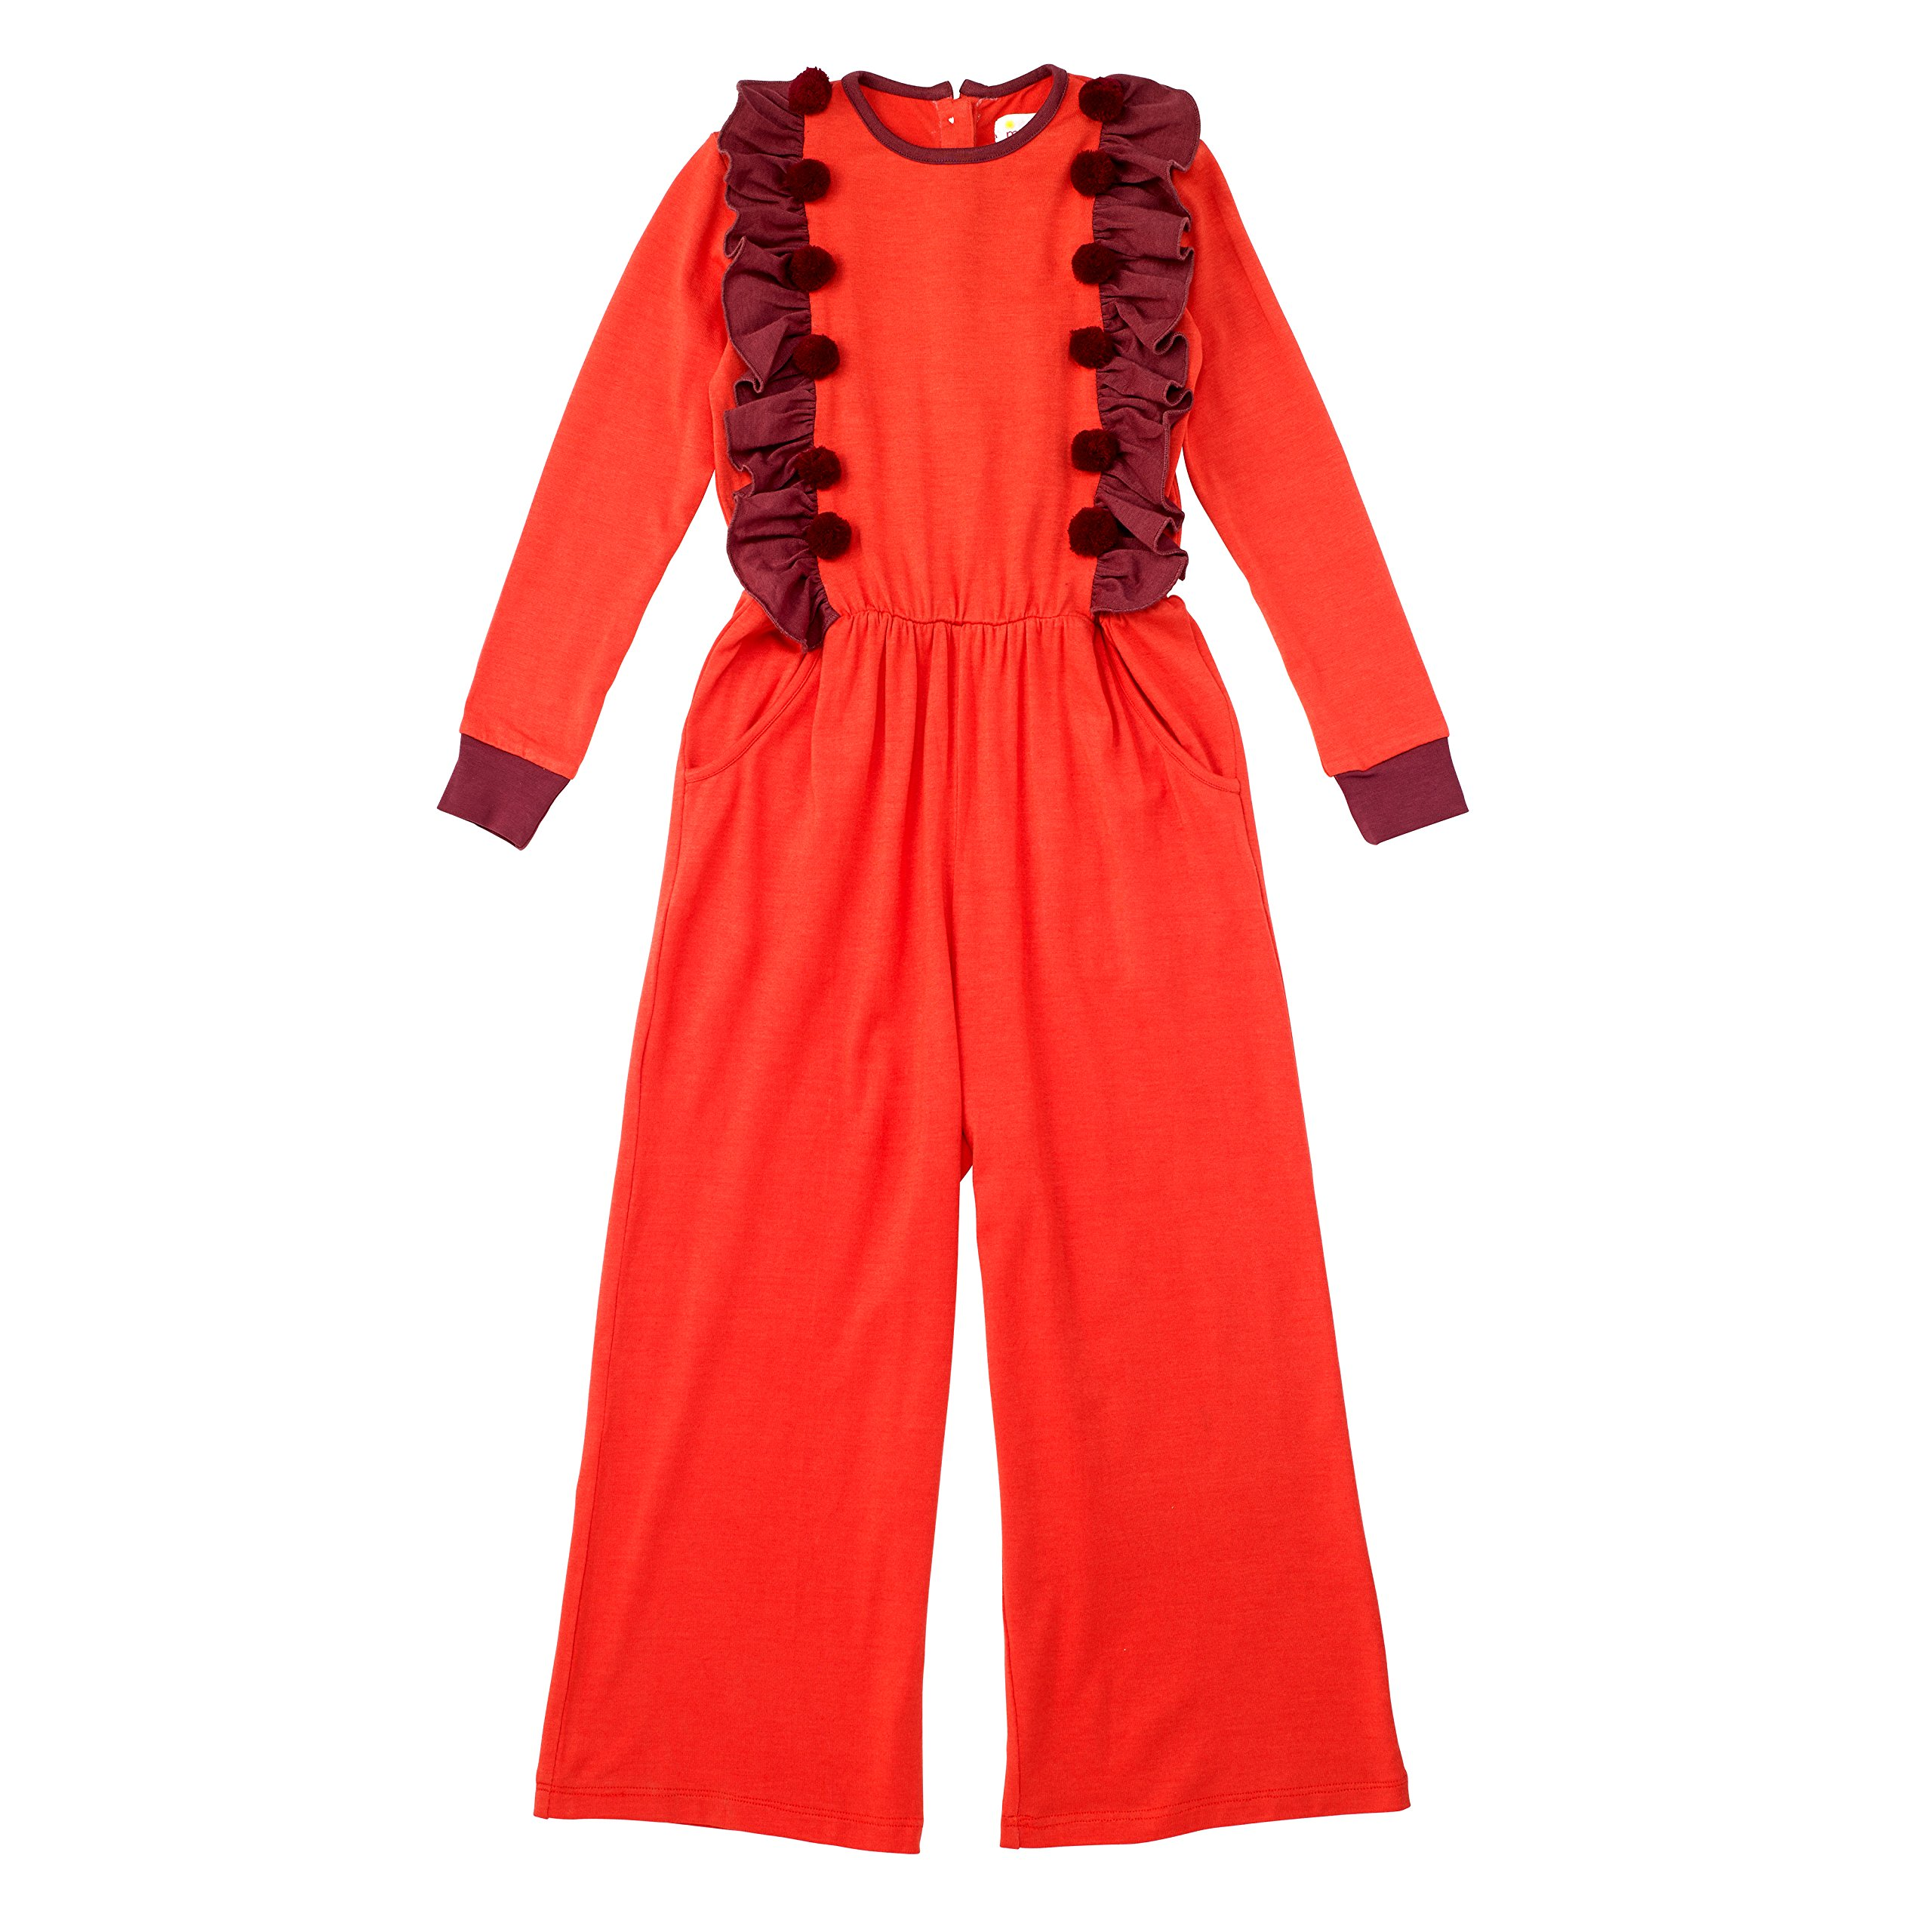 Masala Kids Girls' Little Redwood Jumper, Coral 4Y by Masala Kids (Image #3)